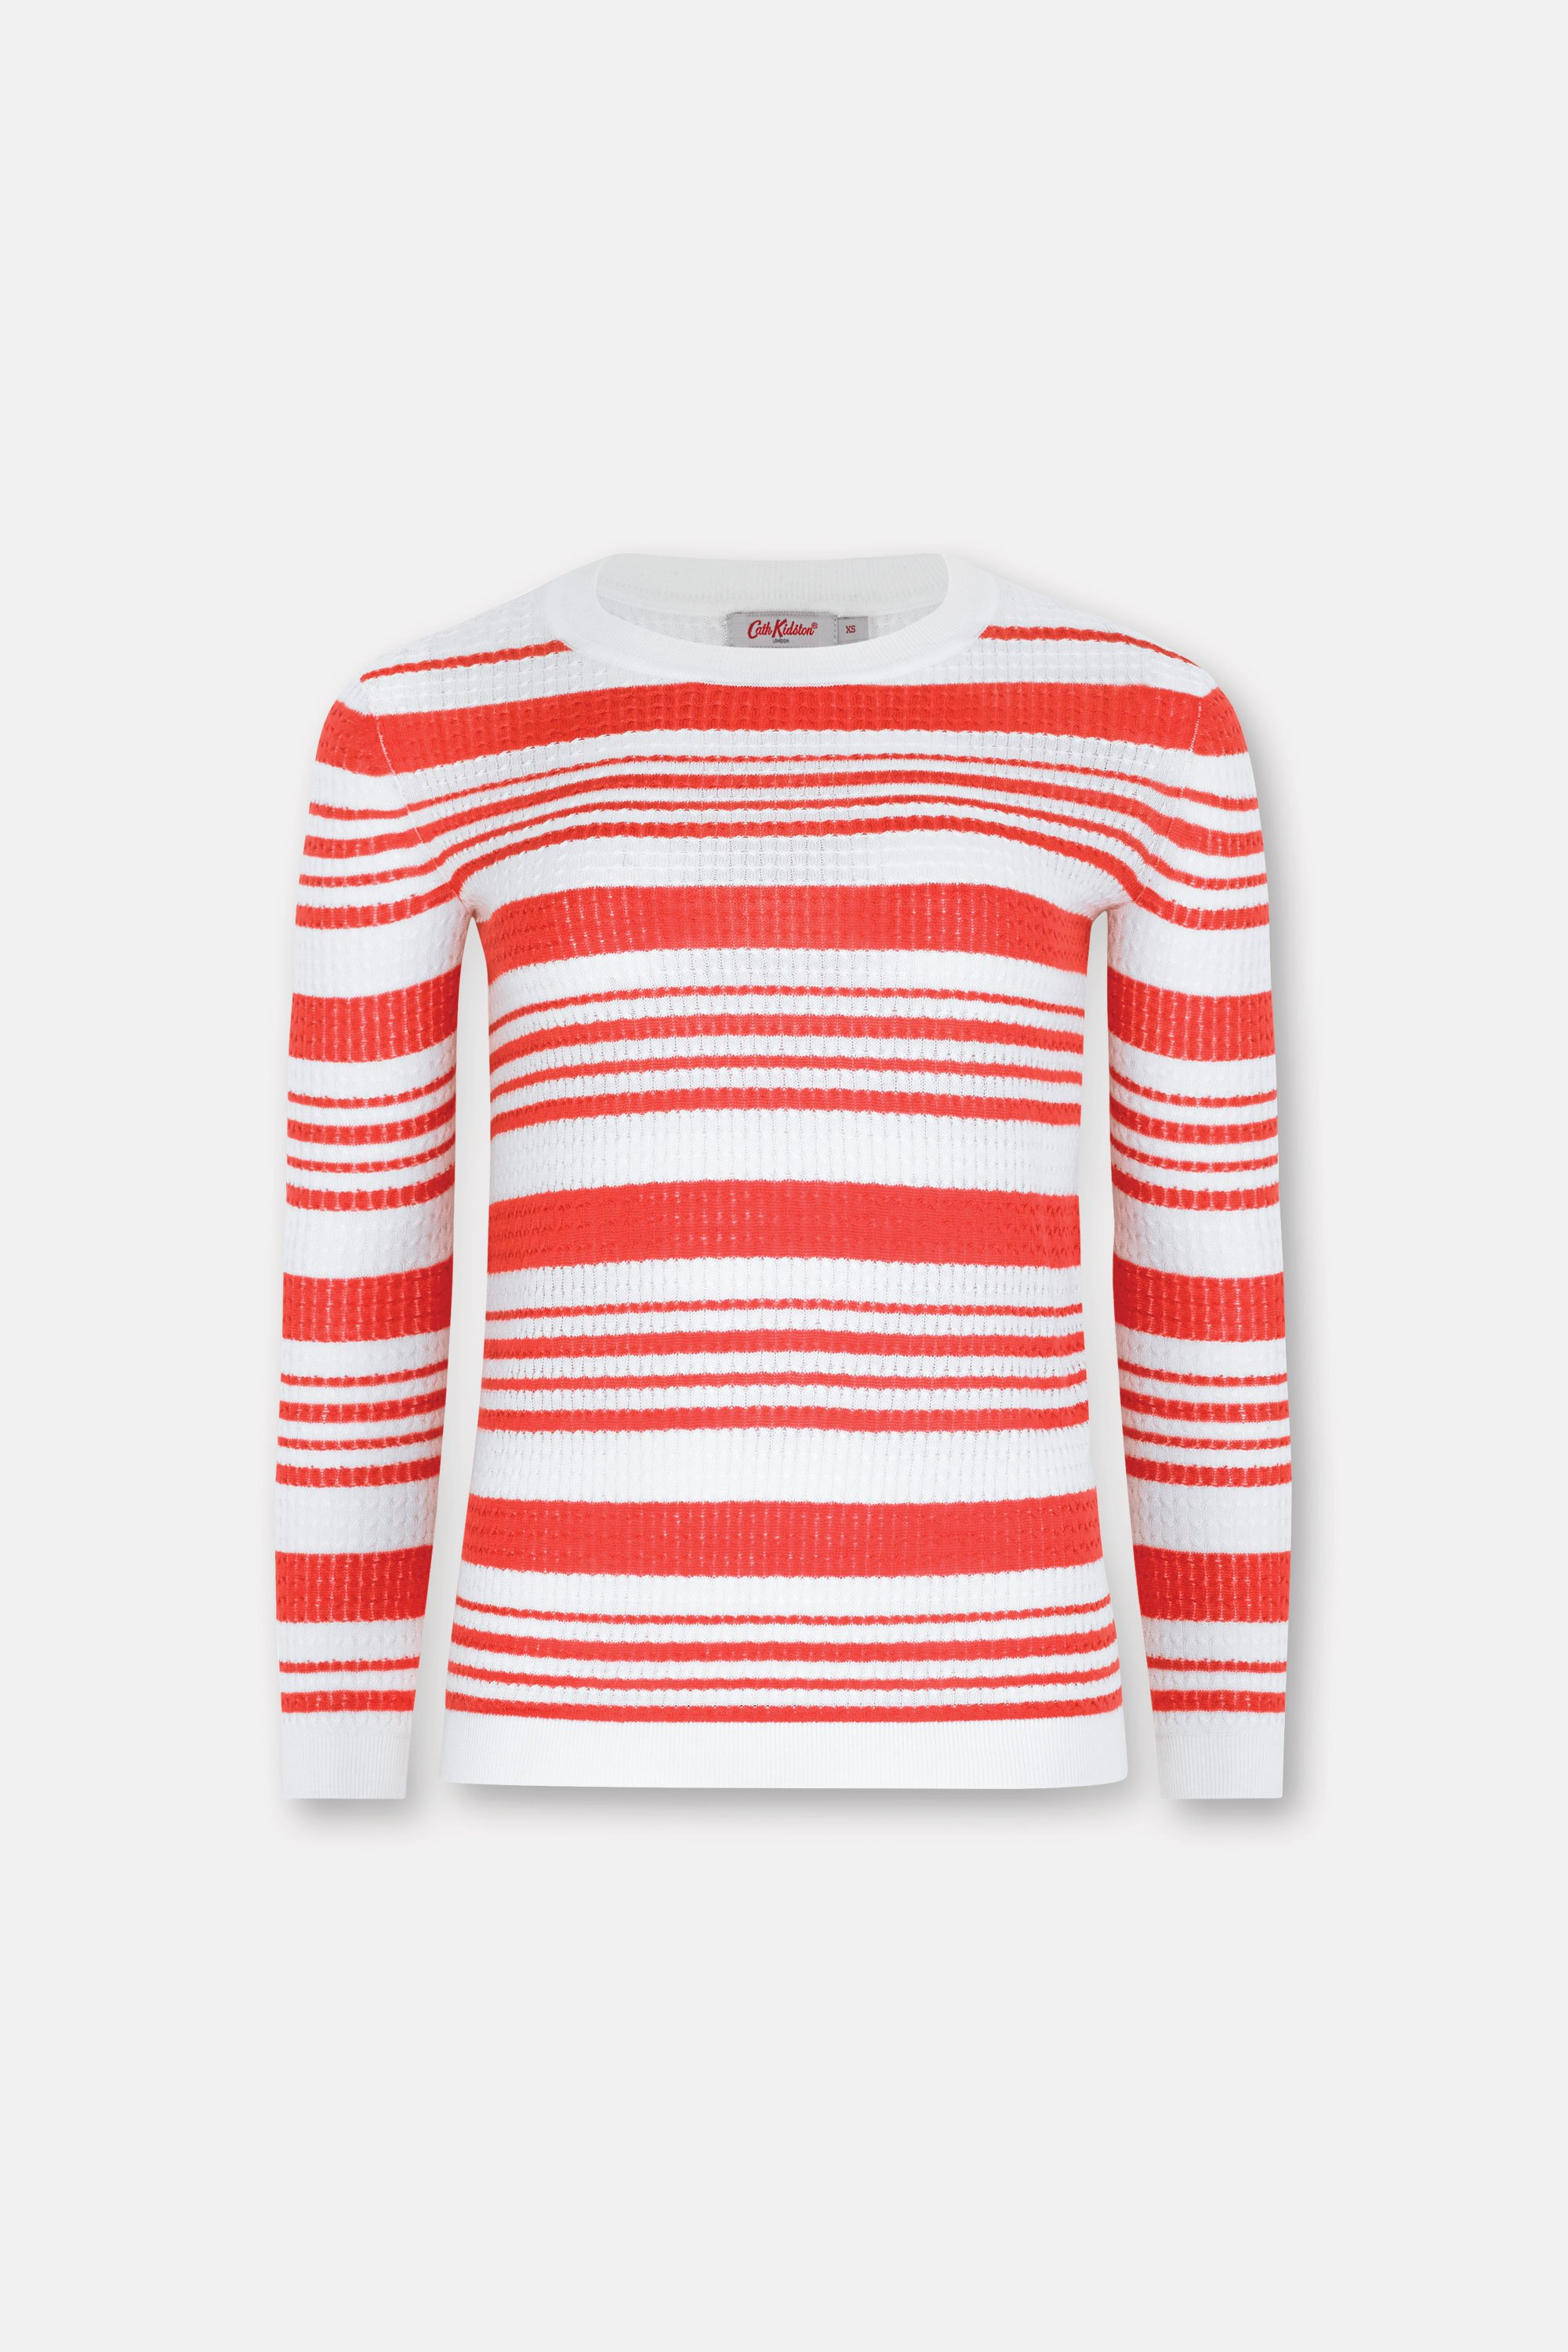 Cath Kidston Cable Red Stripe Jumper in Coral, Viscose Nylon Polyester Cashmere, Size Small